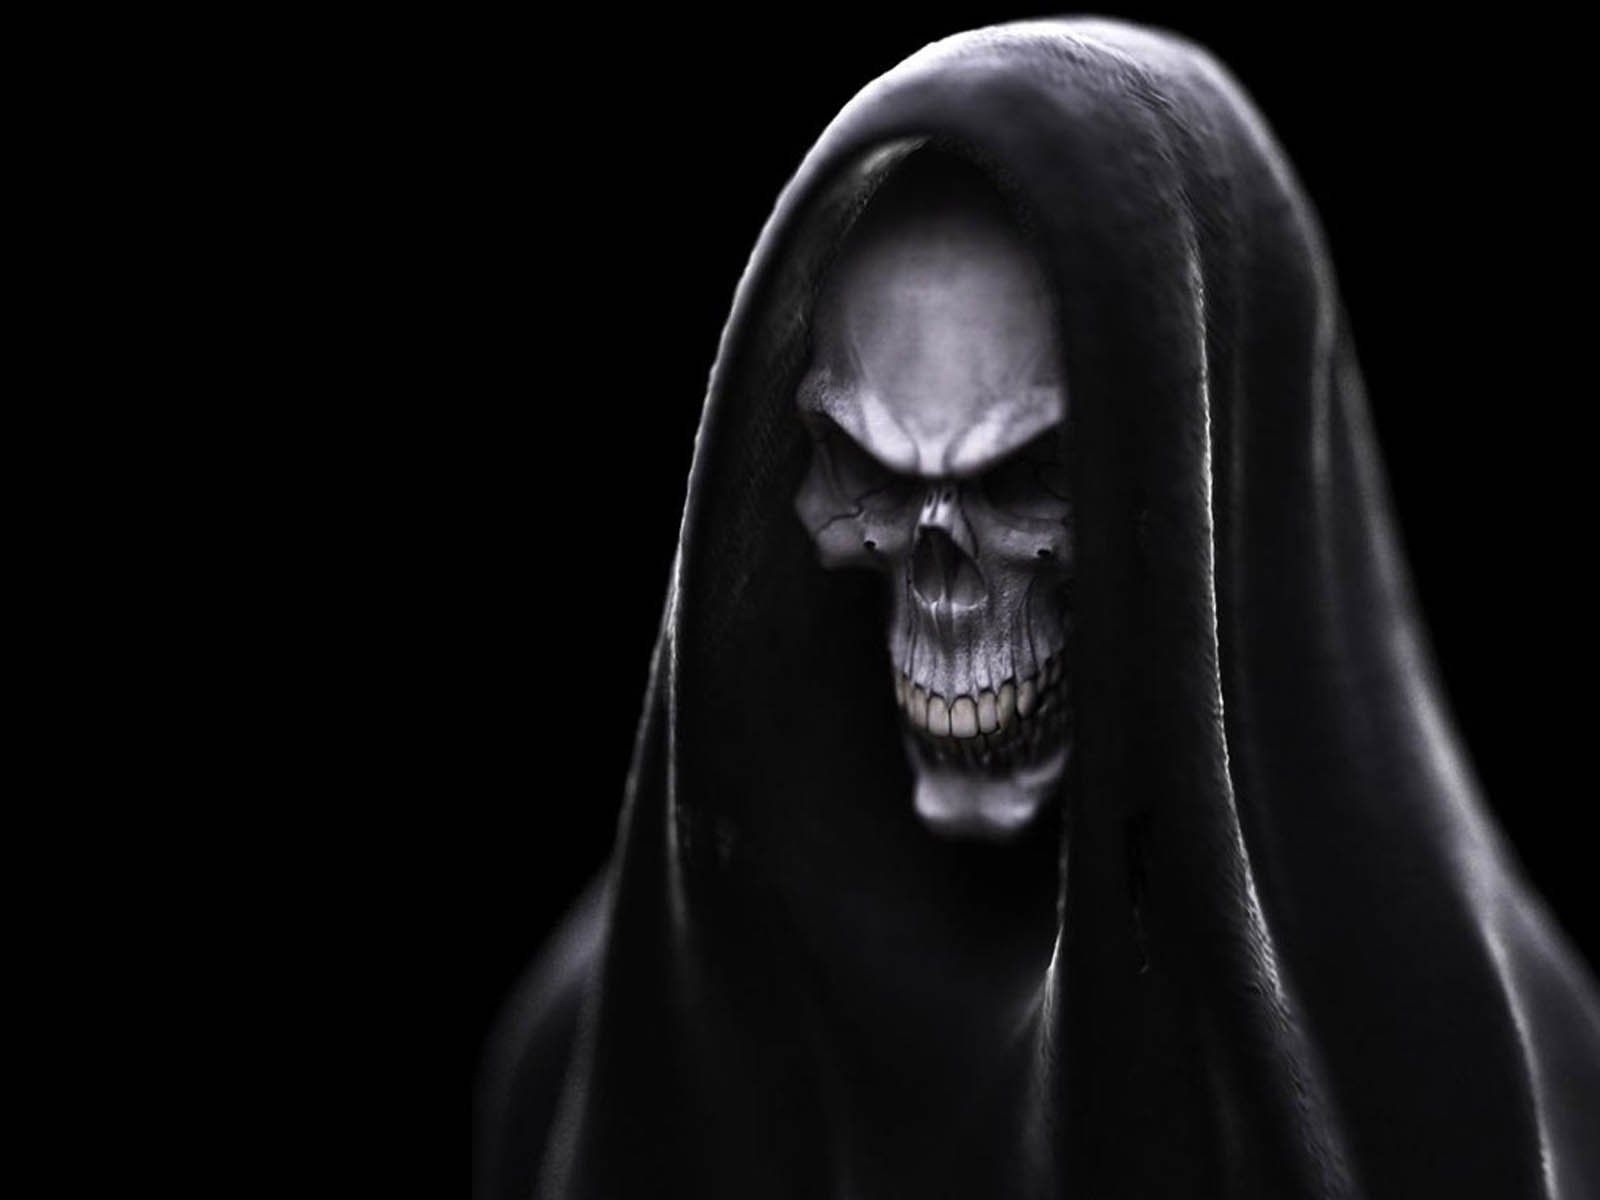 Skull Wallpapers Images Photos Pictures and Backgrounds for 1600x1200